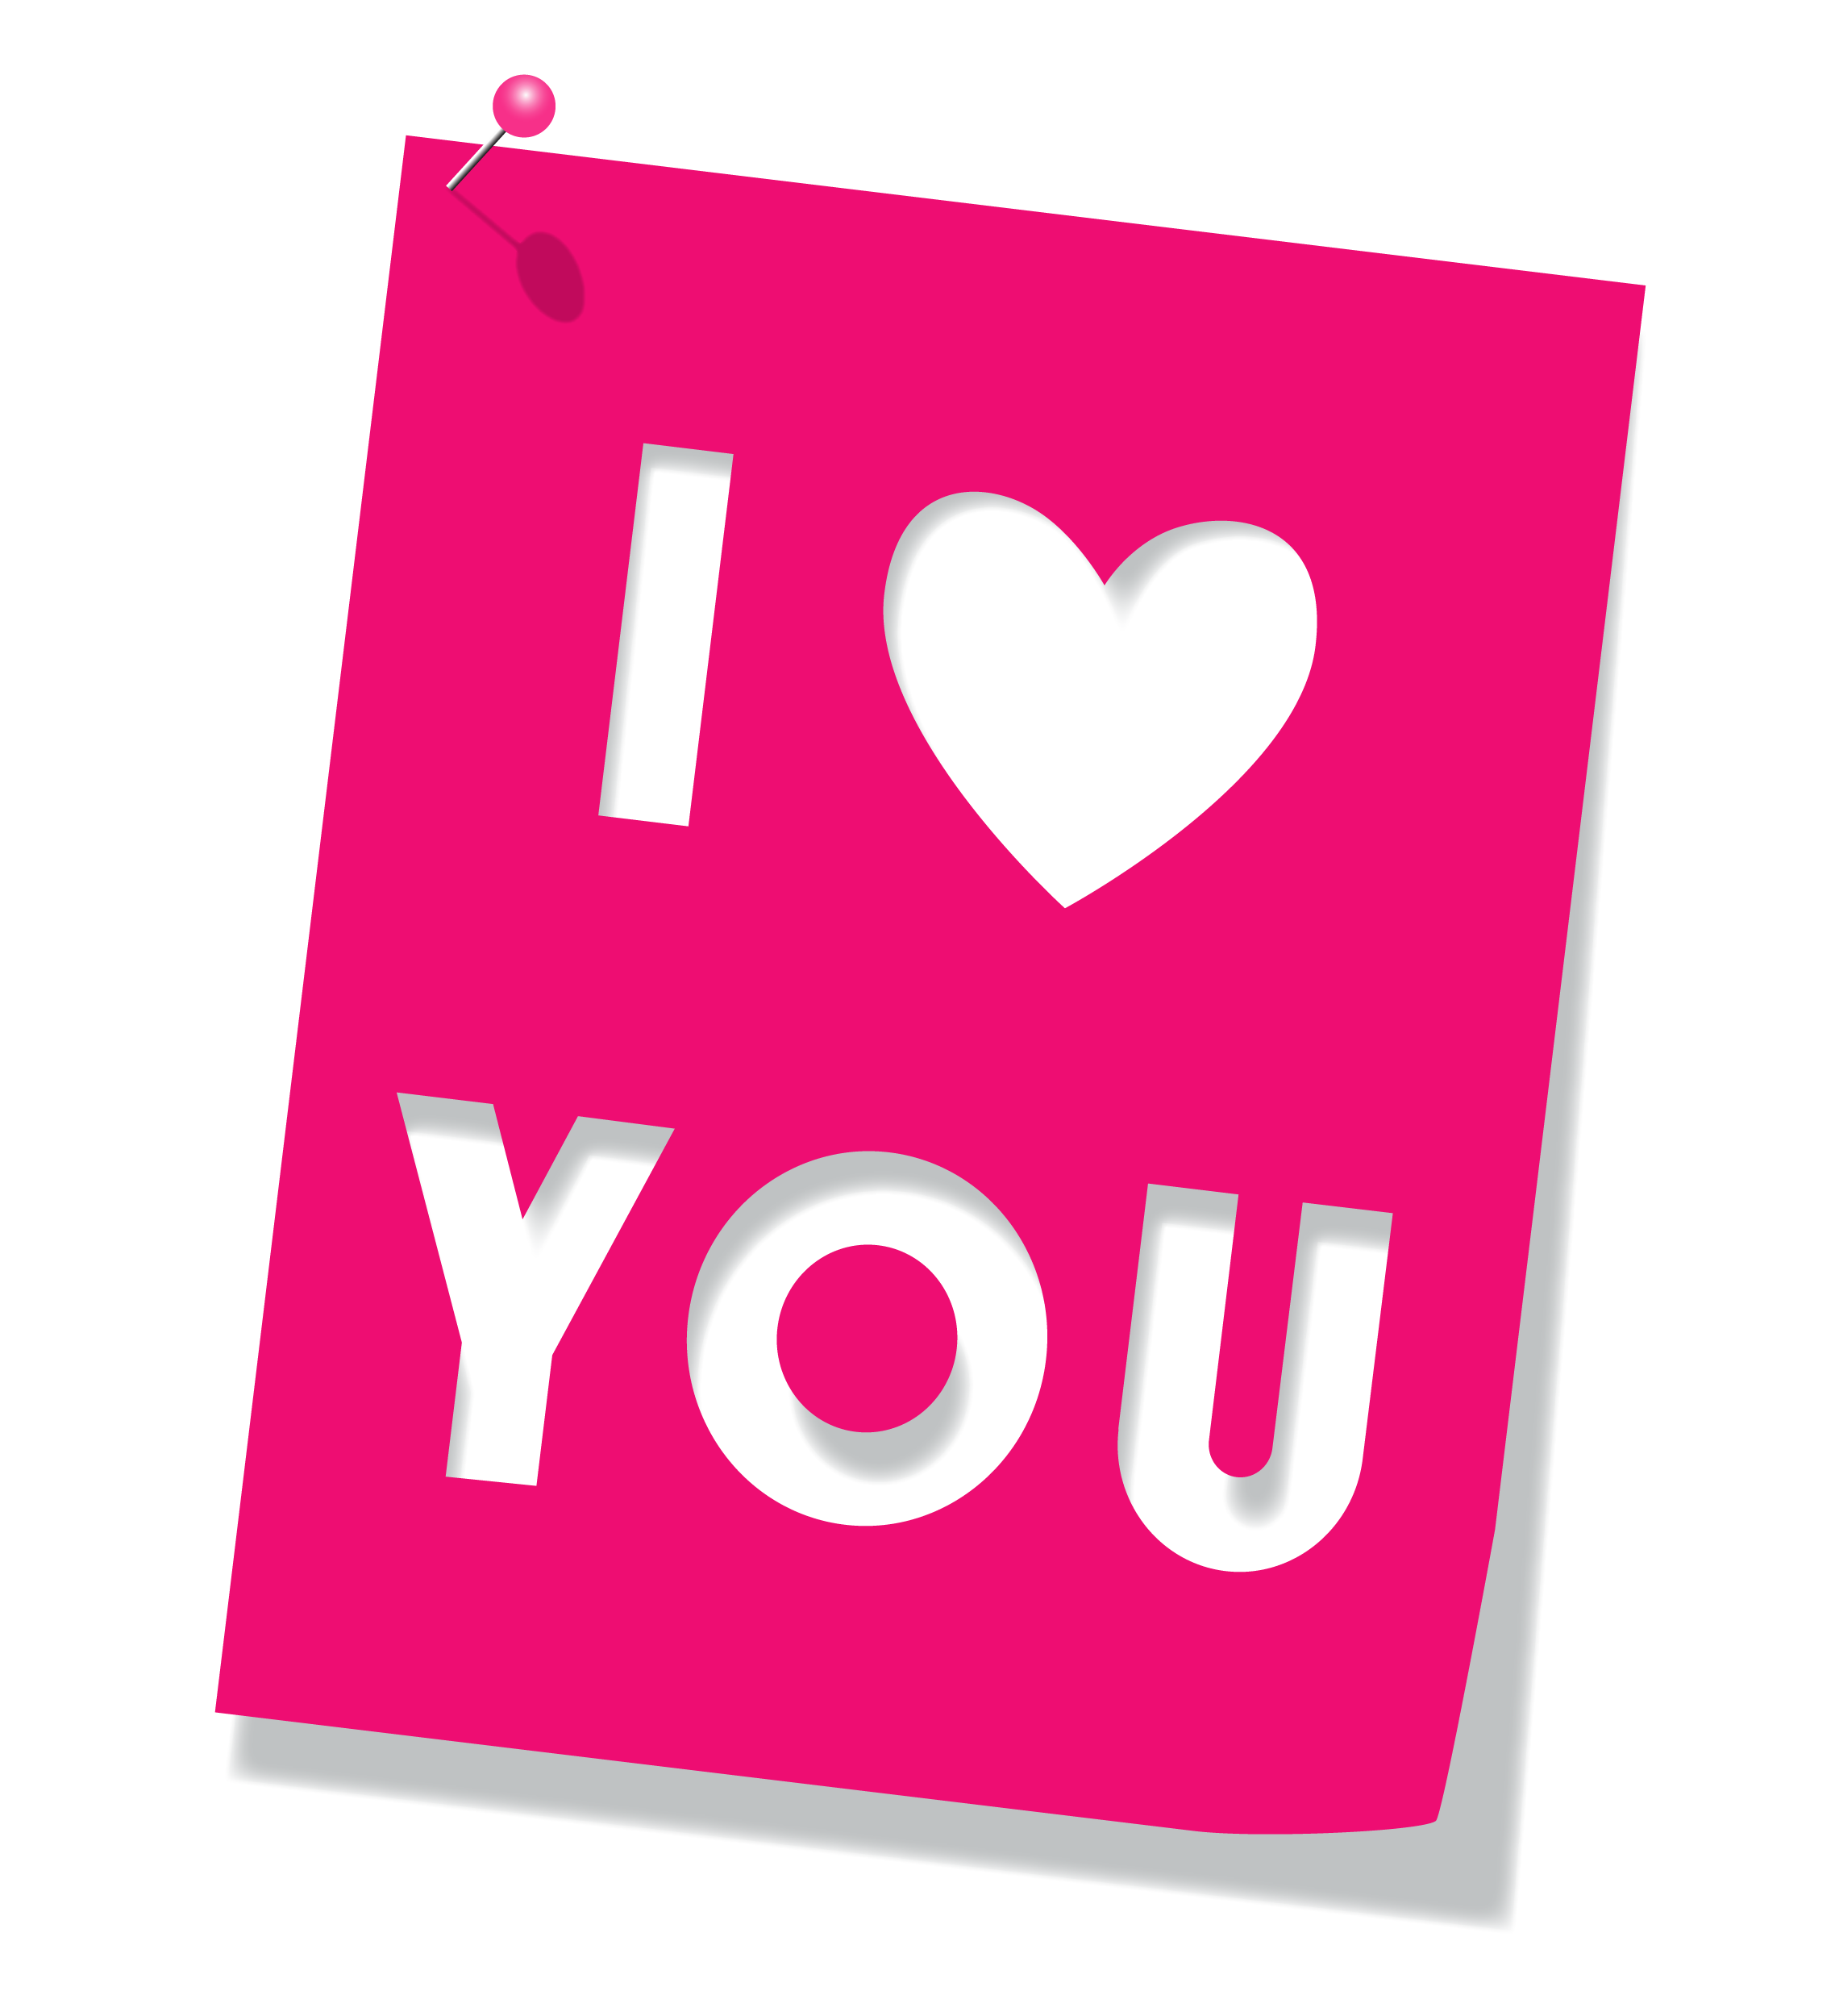 Love clipart 3 image 1